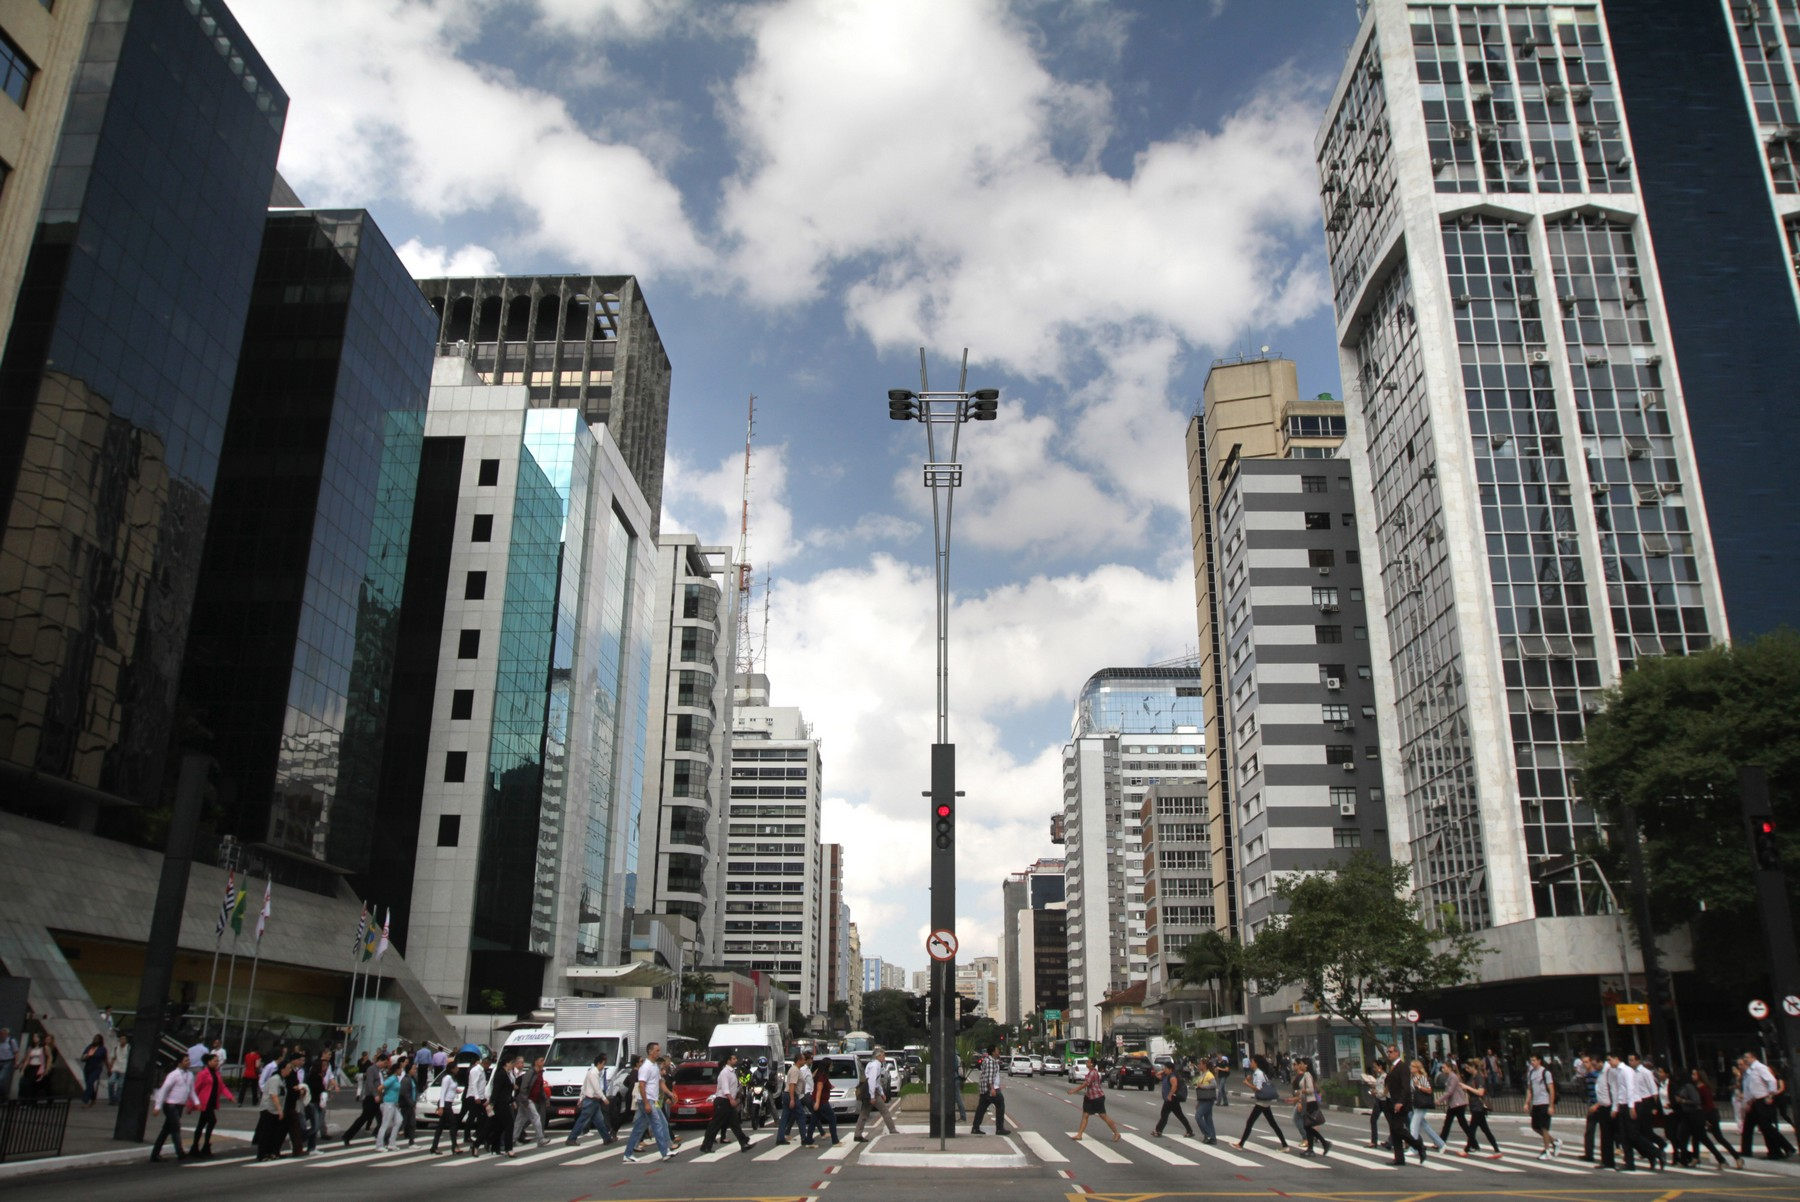 Agencies from Brazil and Macau to further study business missions exchanges